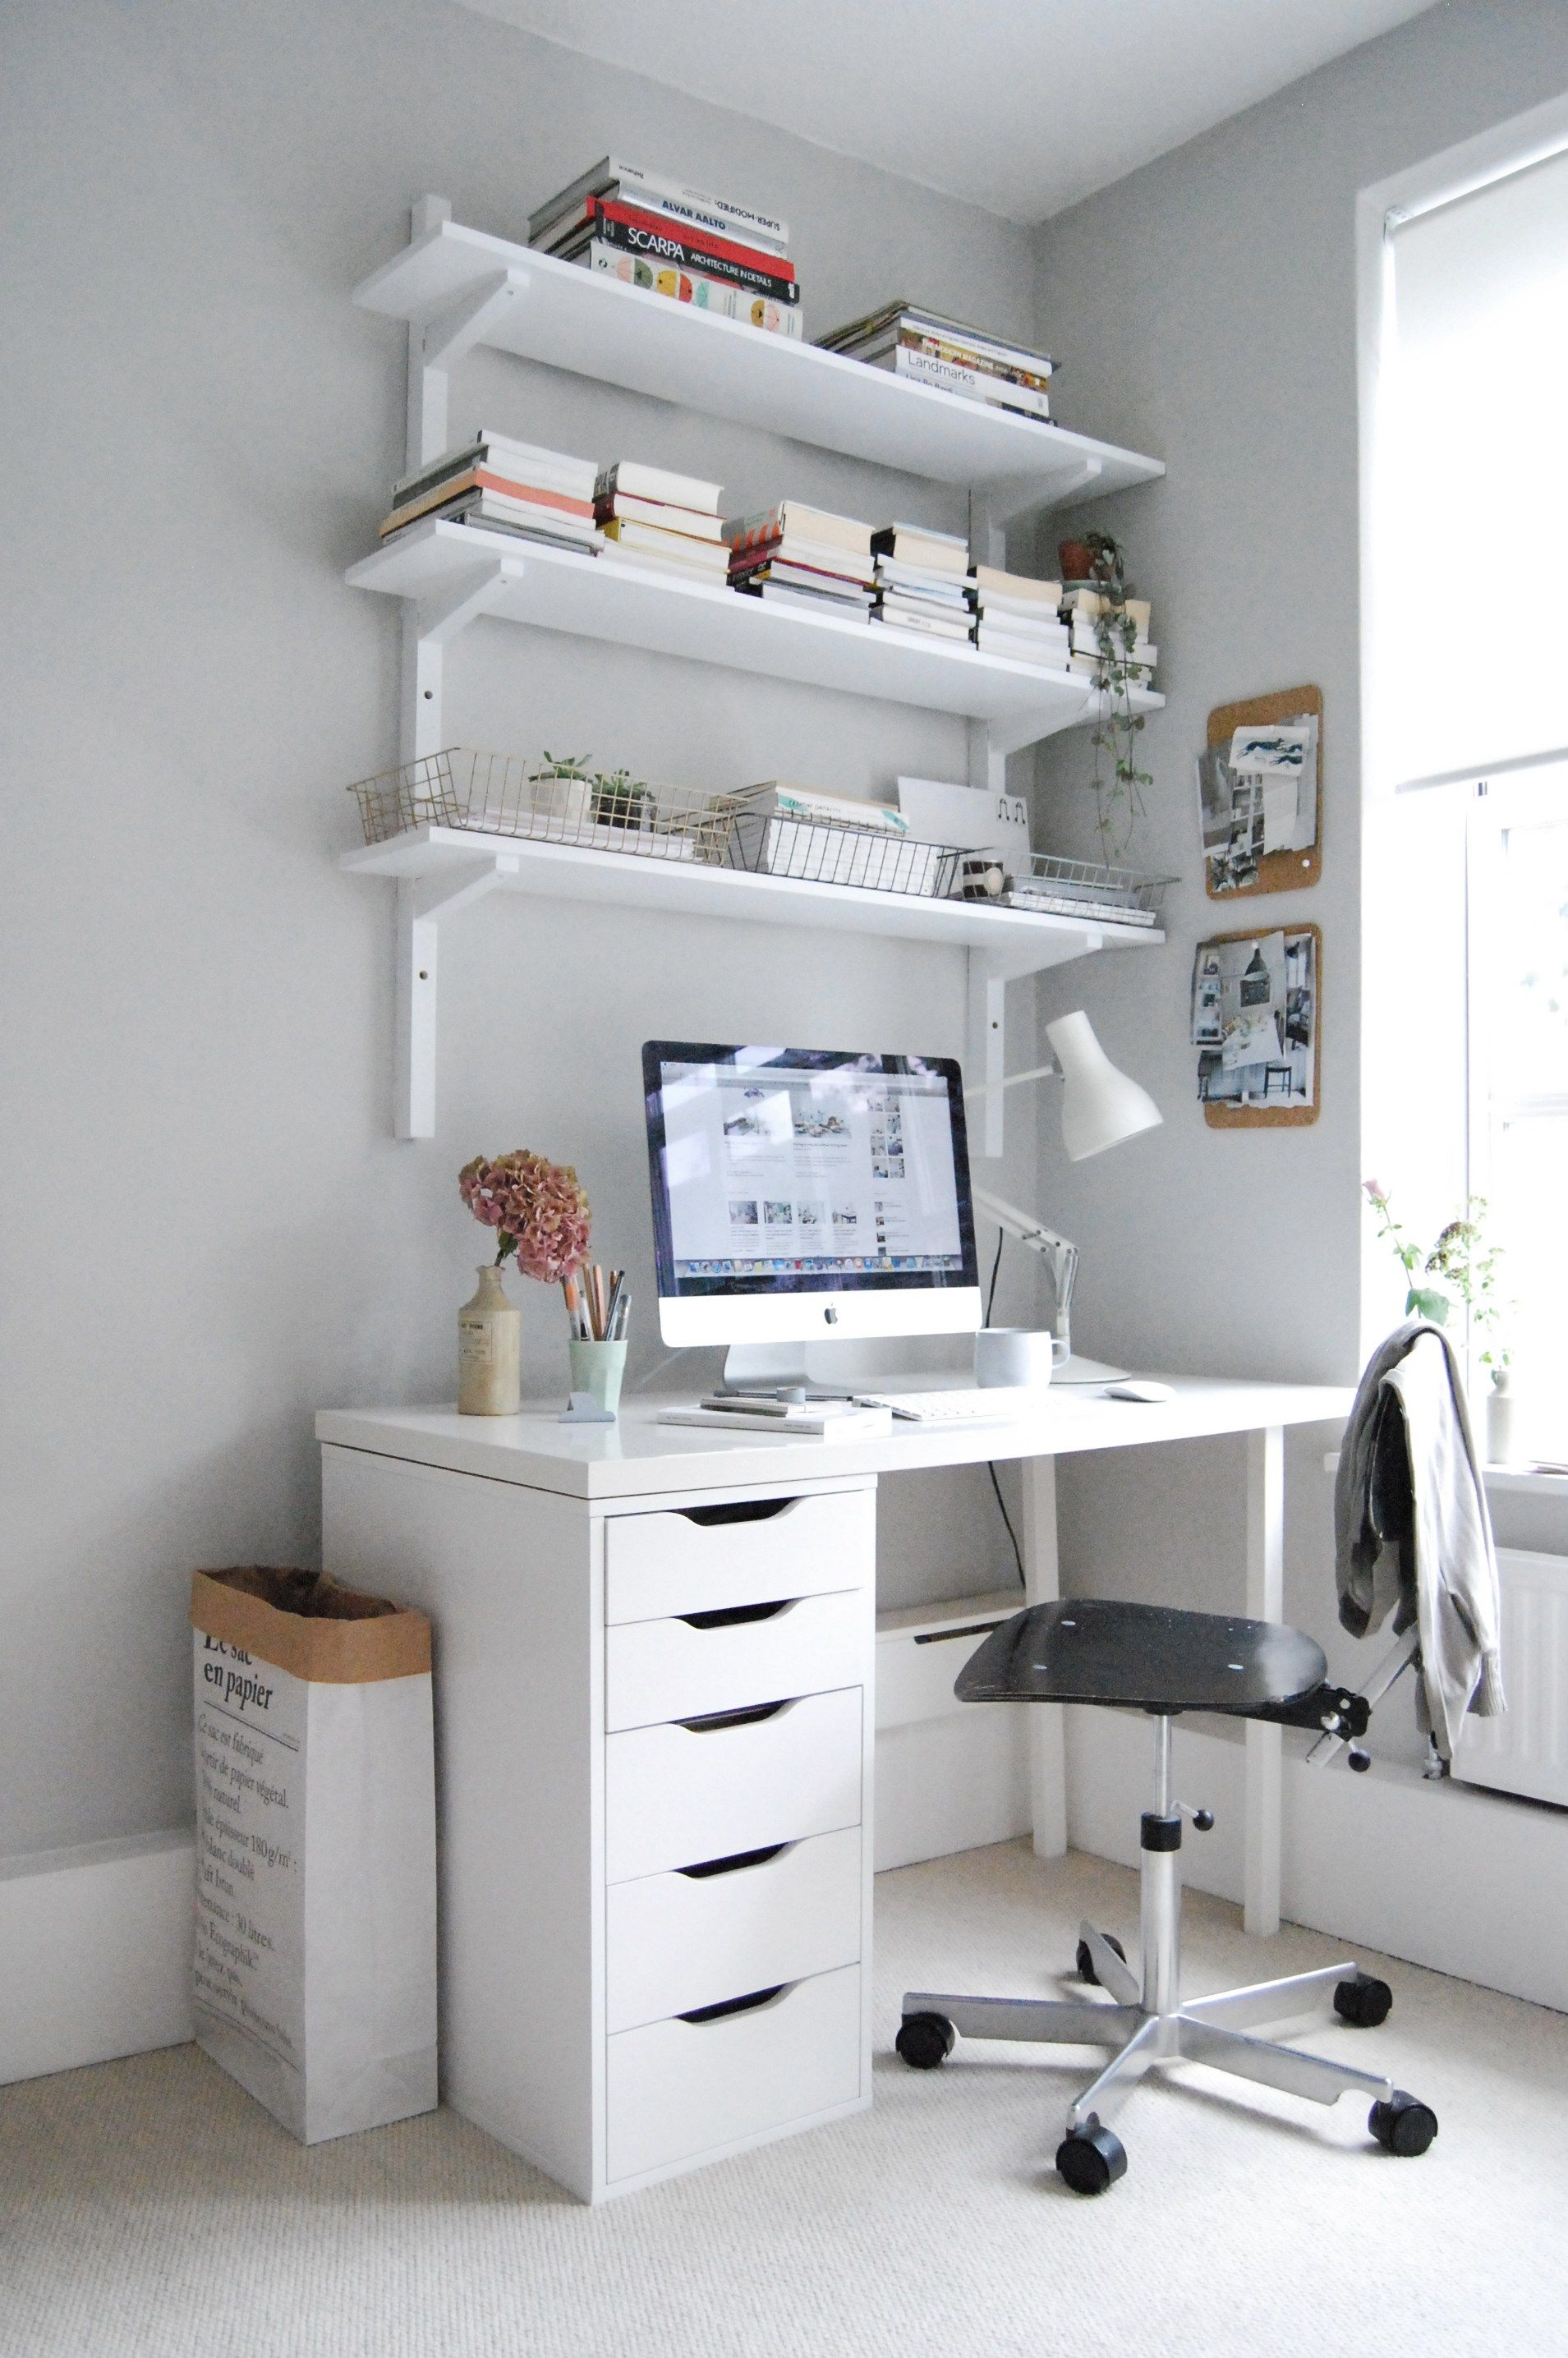 My guest room and home office makeover | Spare room, Office makeover ...